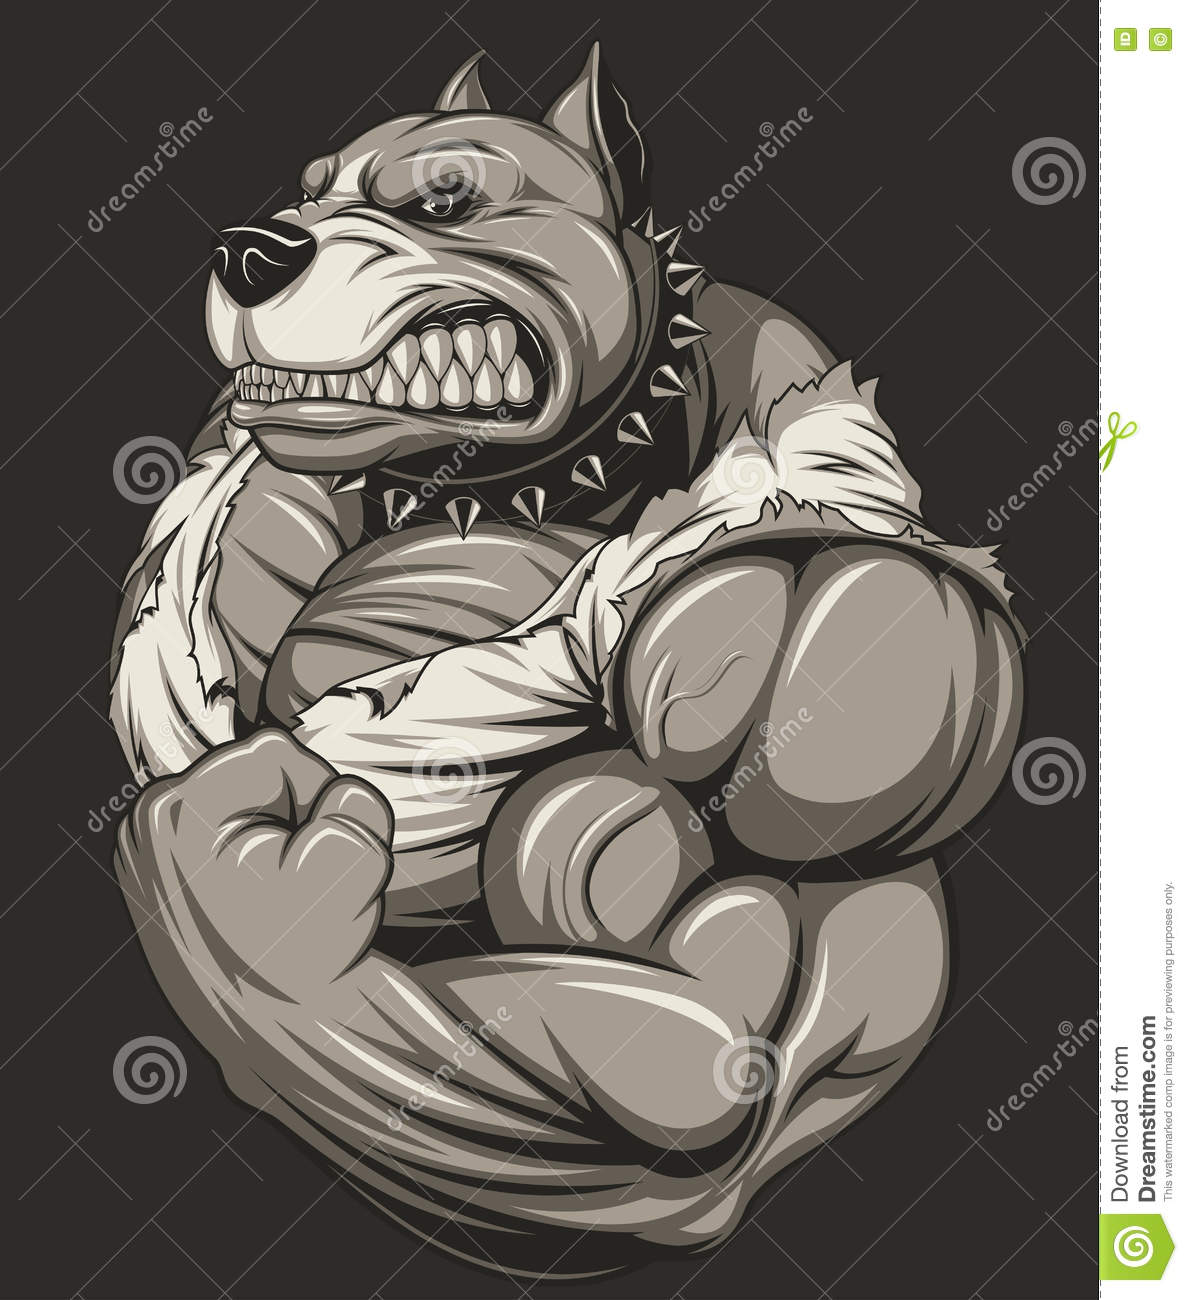 Strong Pitbull Bodybuilder Cartoon Vector | CartoonDealer